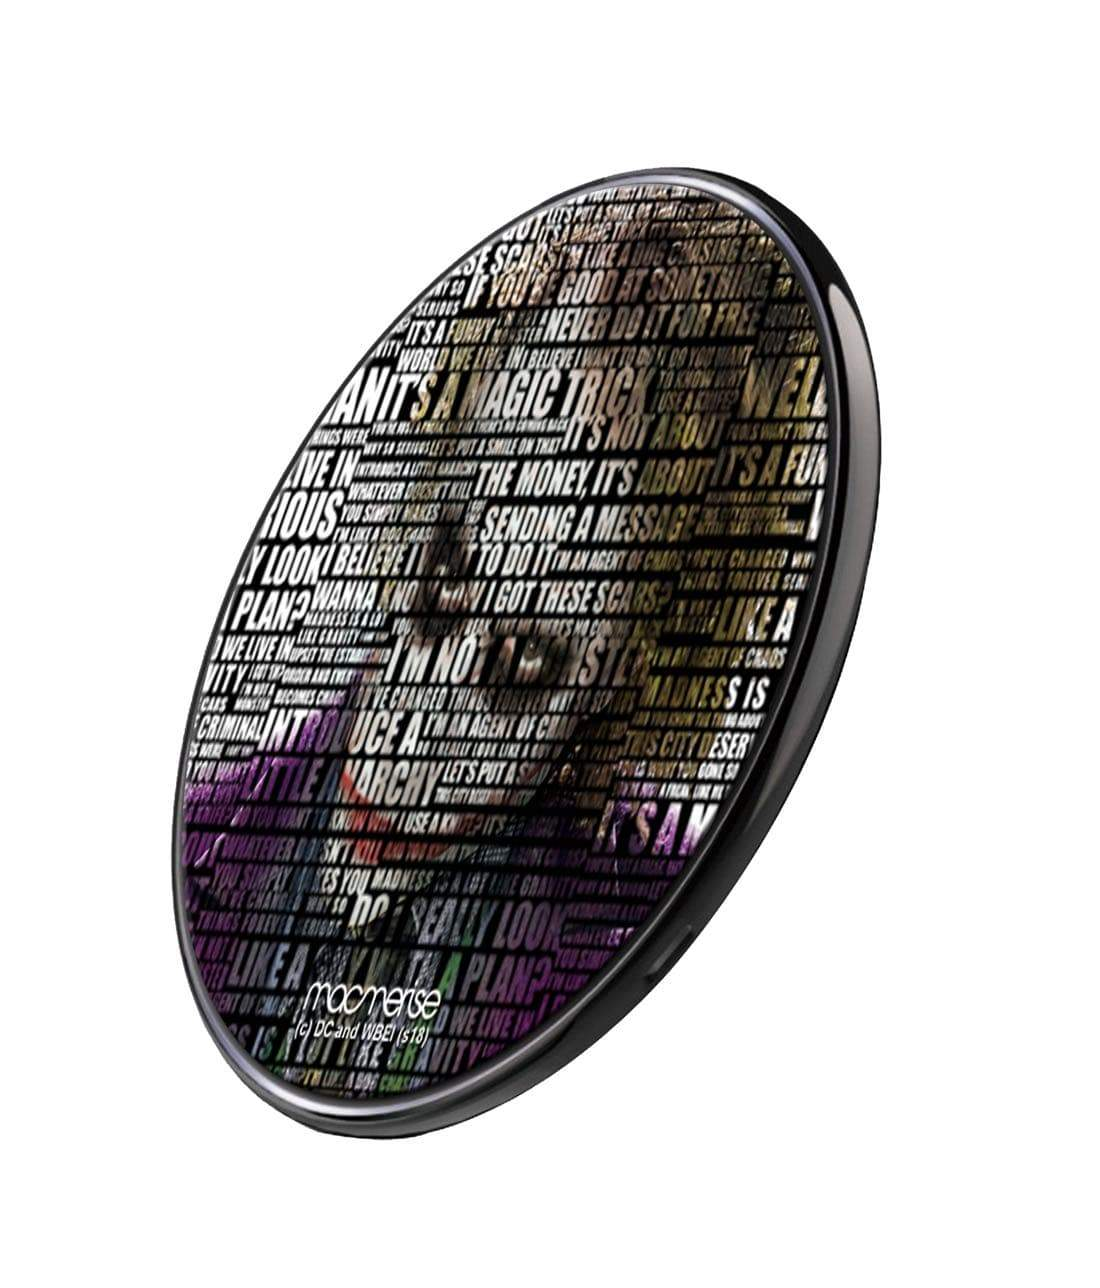 Joker Quote Wireless Charger by Macmerise -Macmerise - India - www.superherotoystore.com